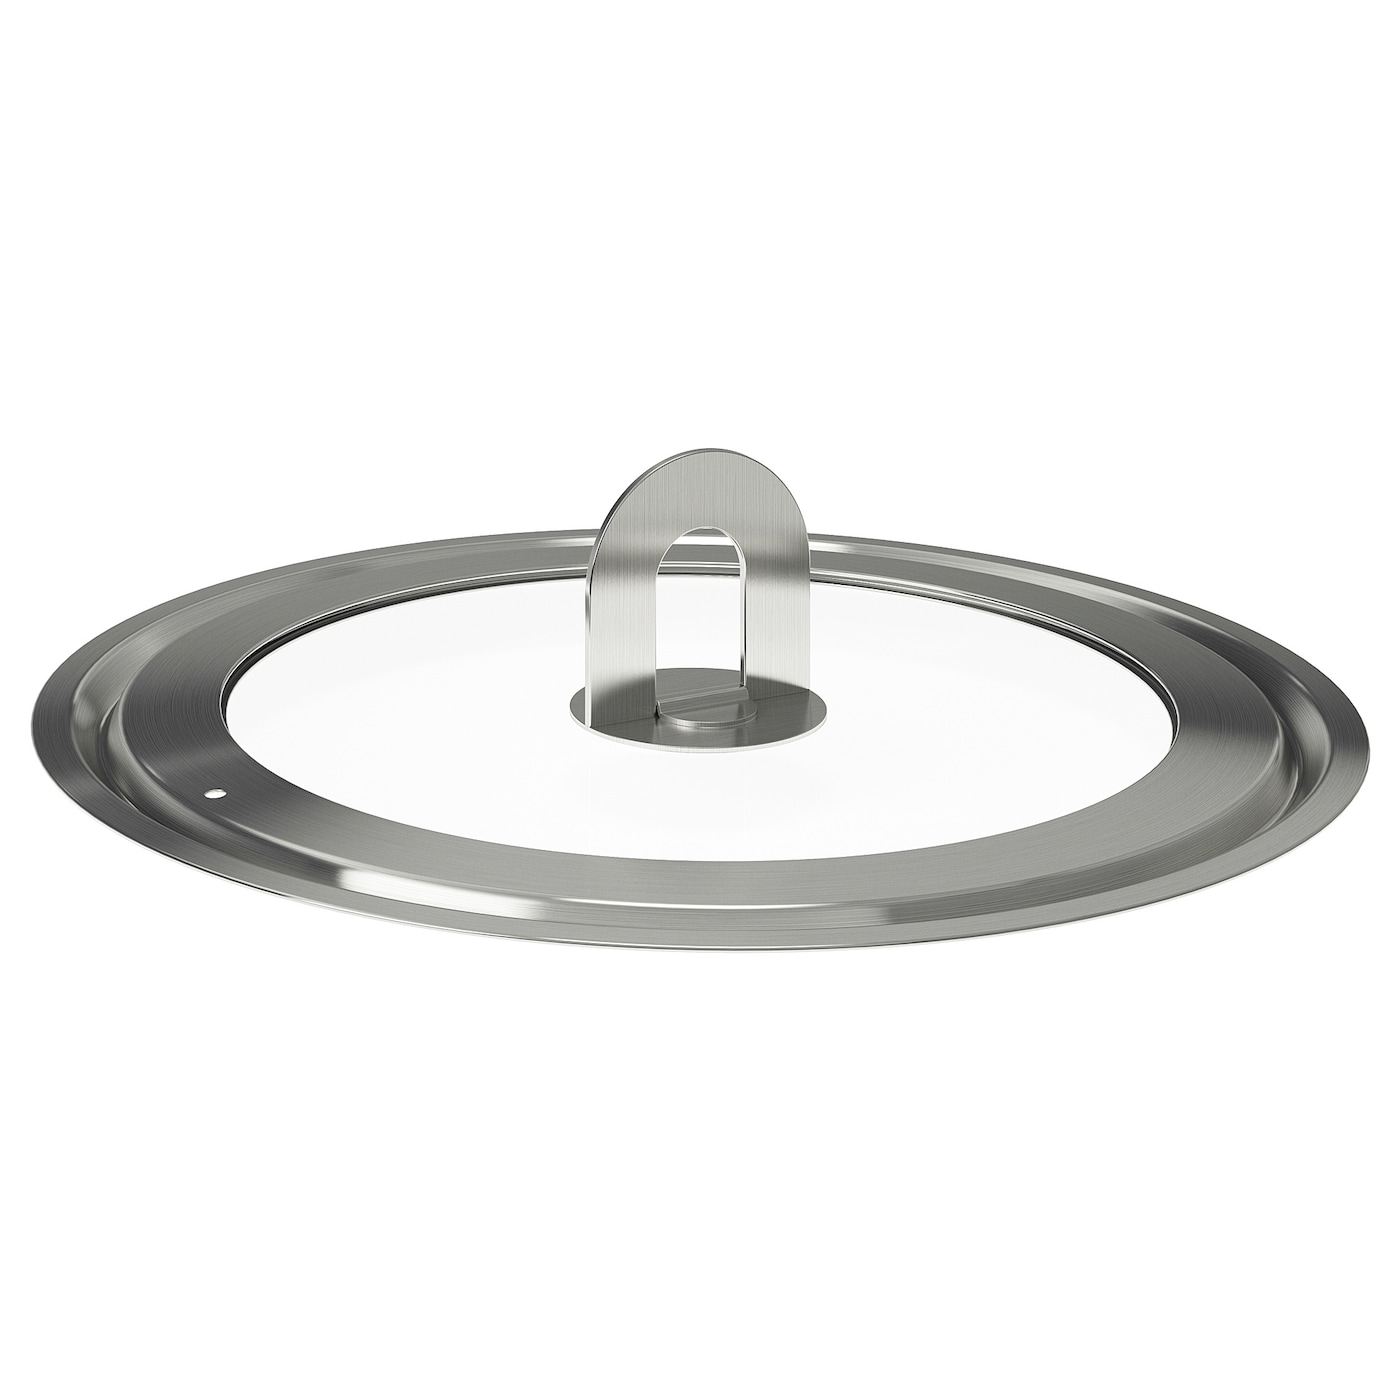 IKEA STABIL lid Fits most frying pans and sauté pans 24 cm in diameter.